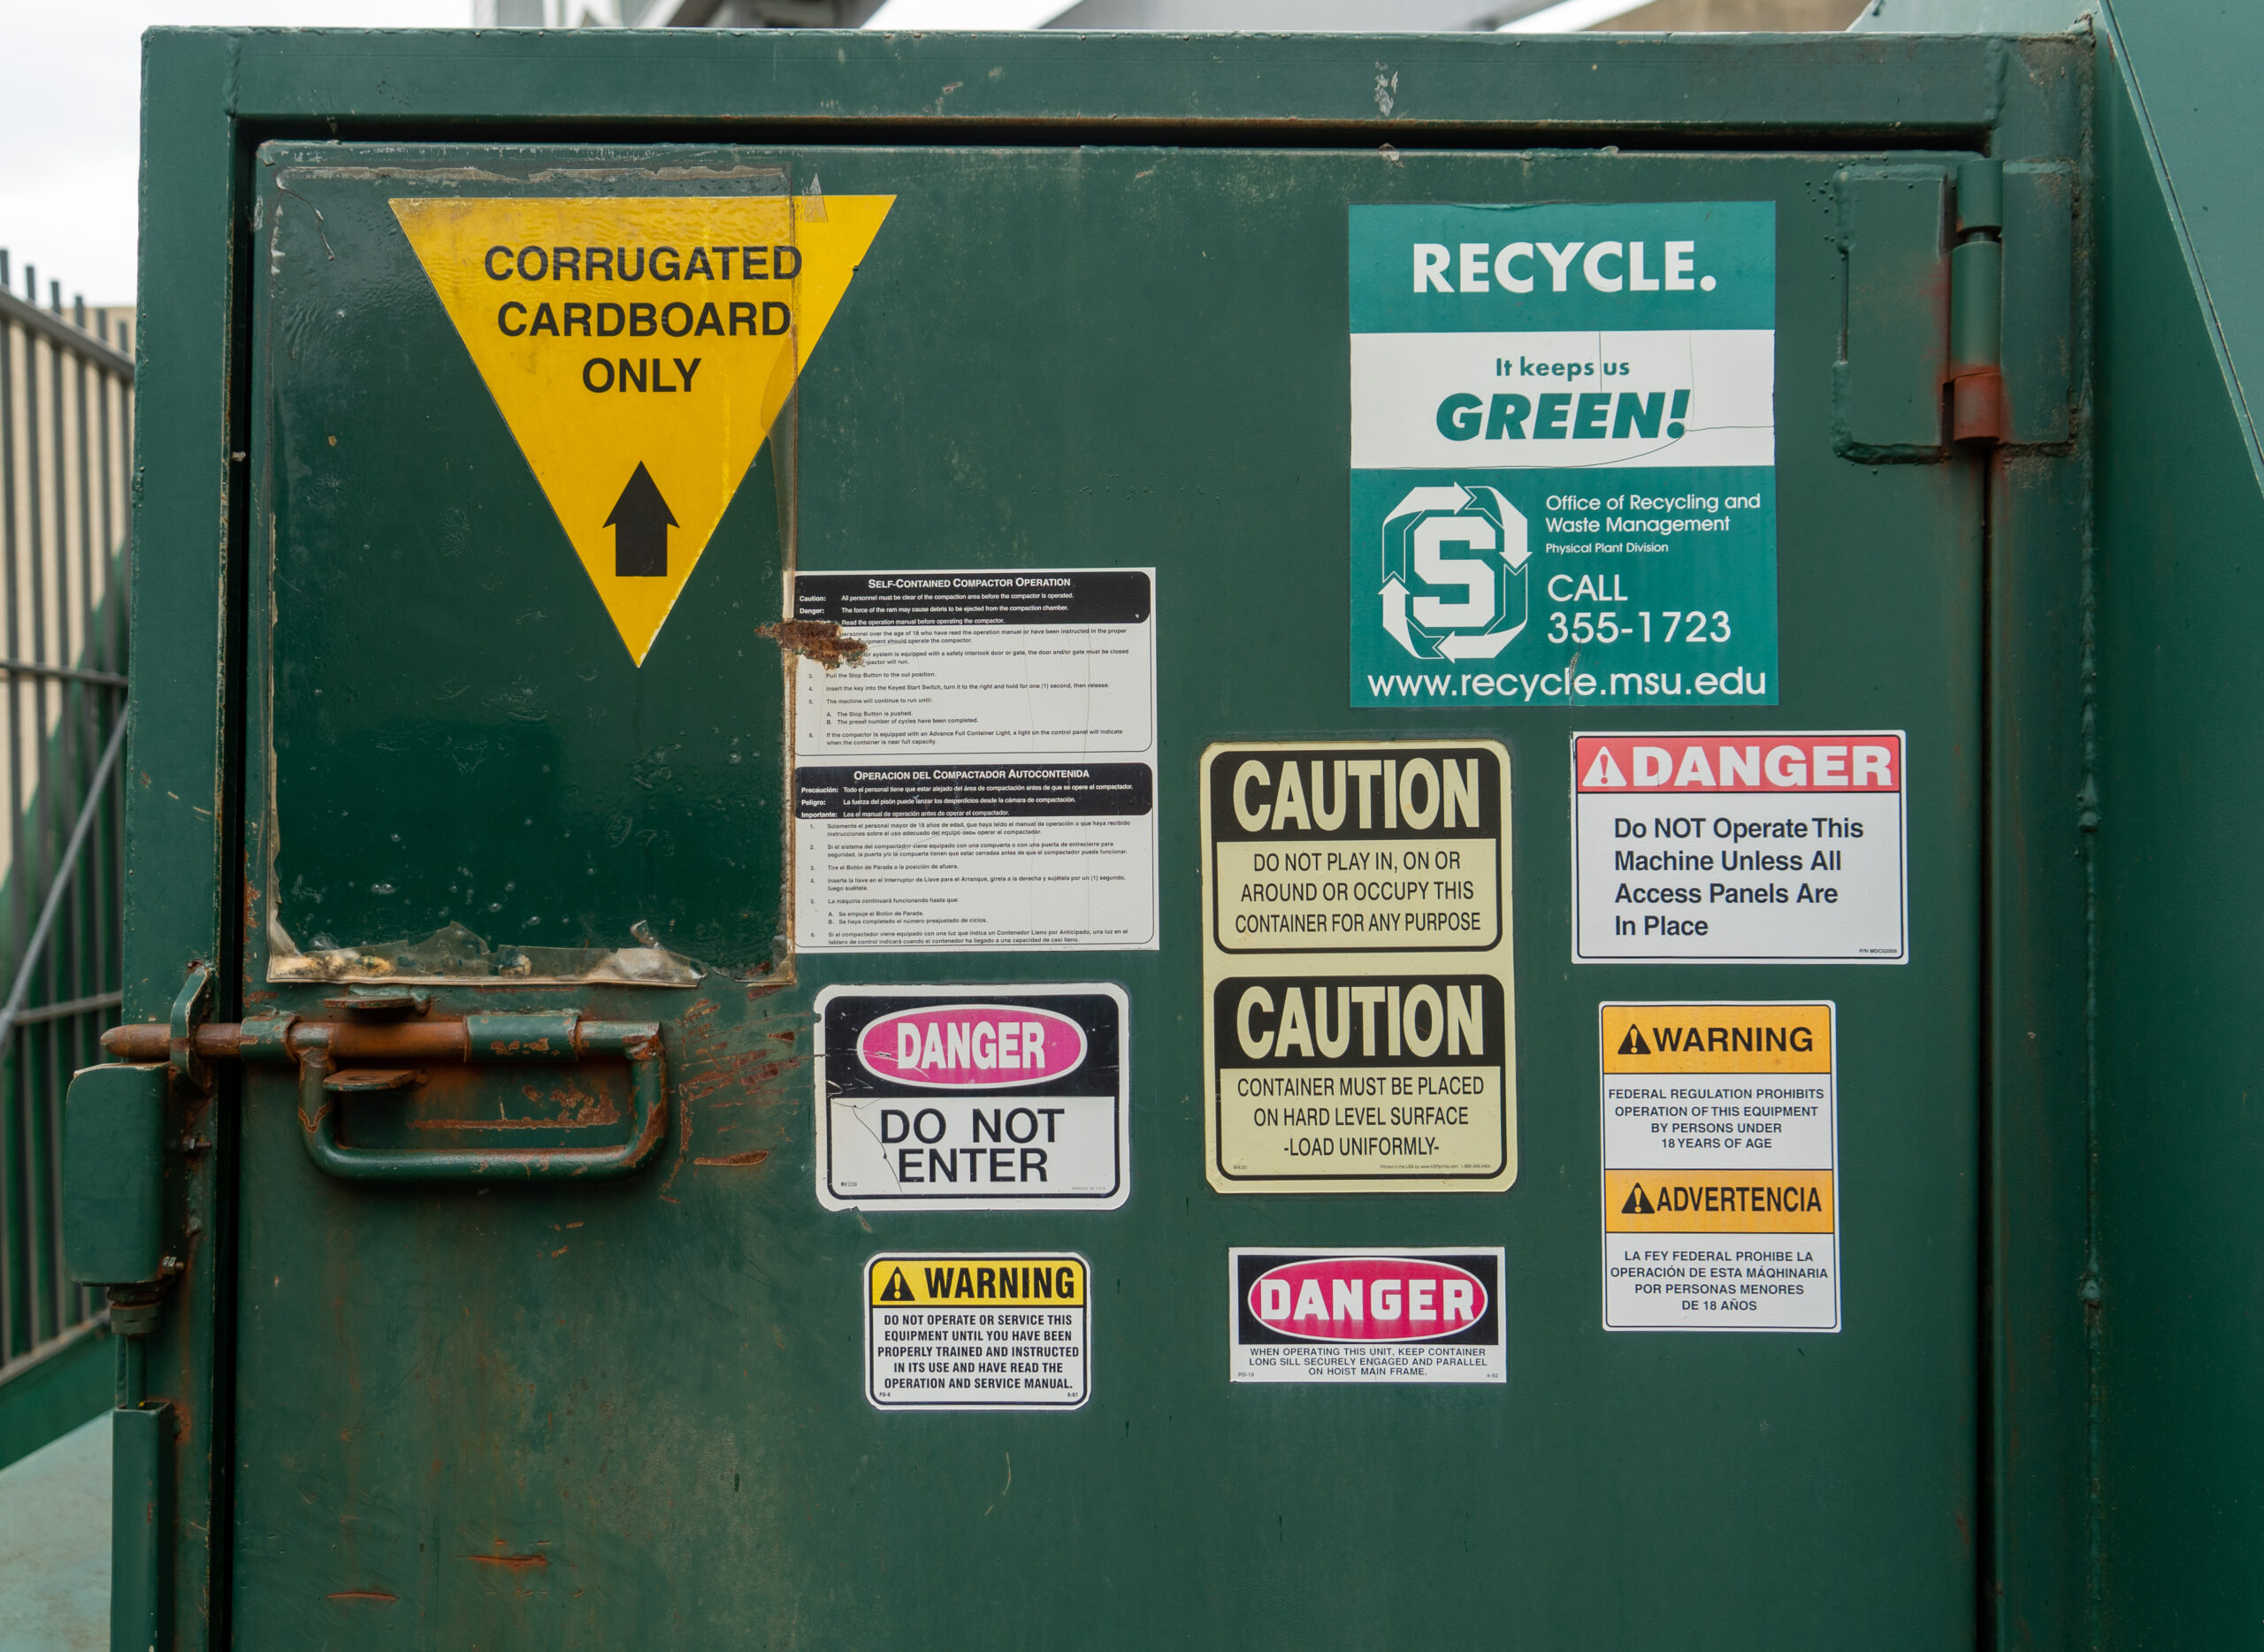 Spartan Stadium has its own cardboard compactor to recycle the large amounts of waste generated at football games.